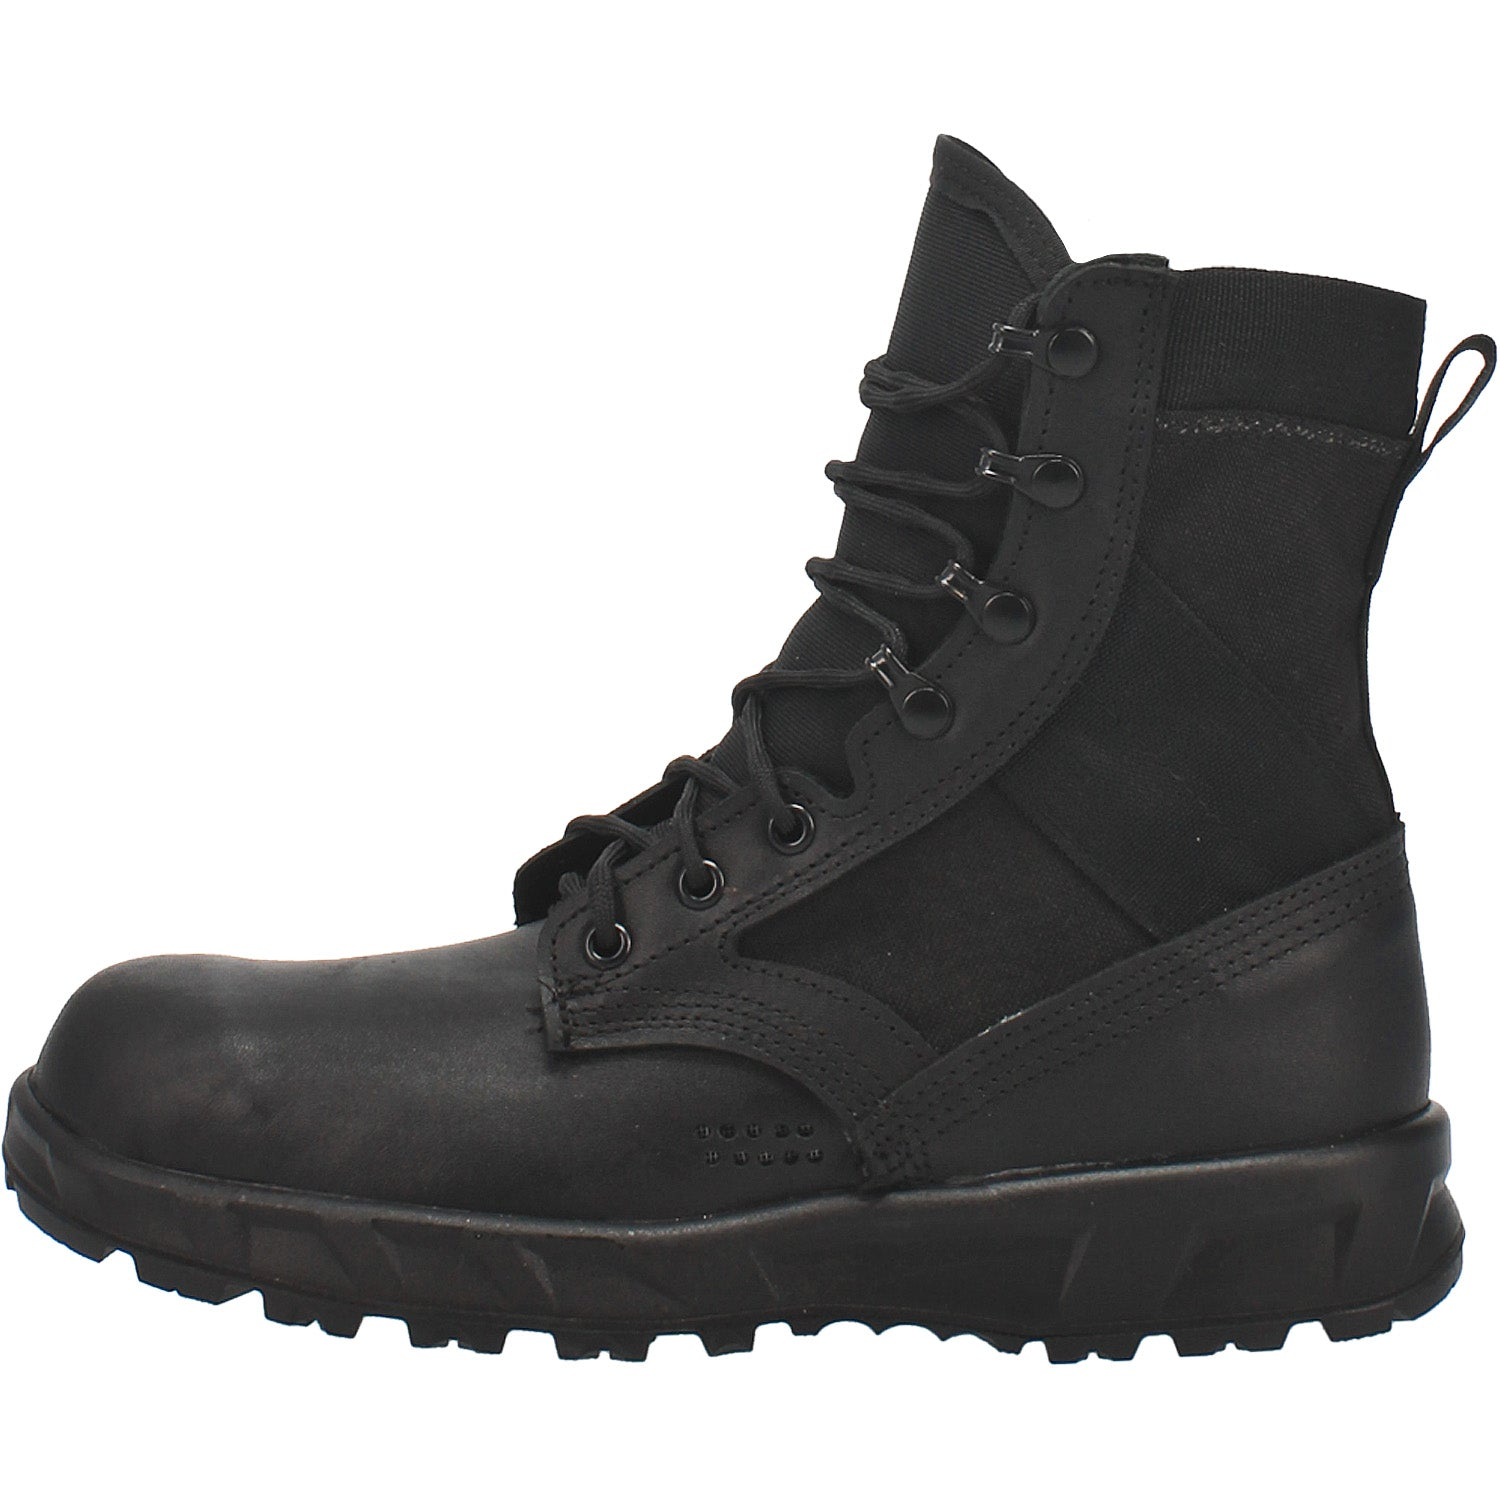 T2 Ultra Light Hot Weather Combat Boot 14940878667818